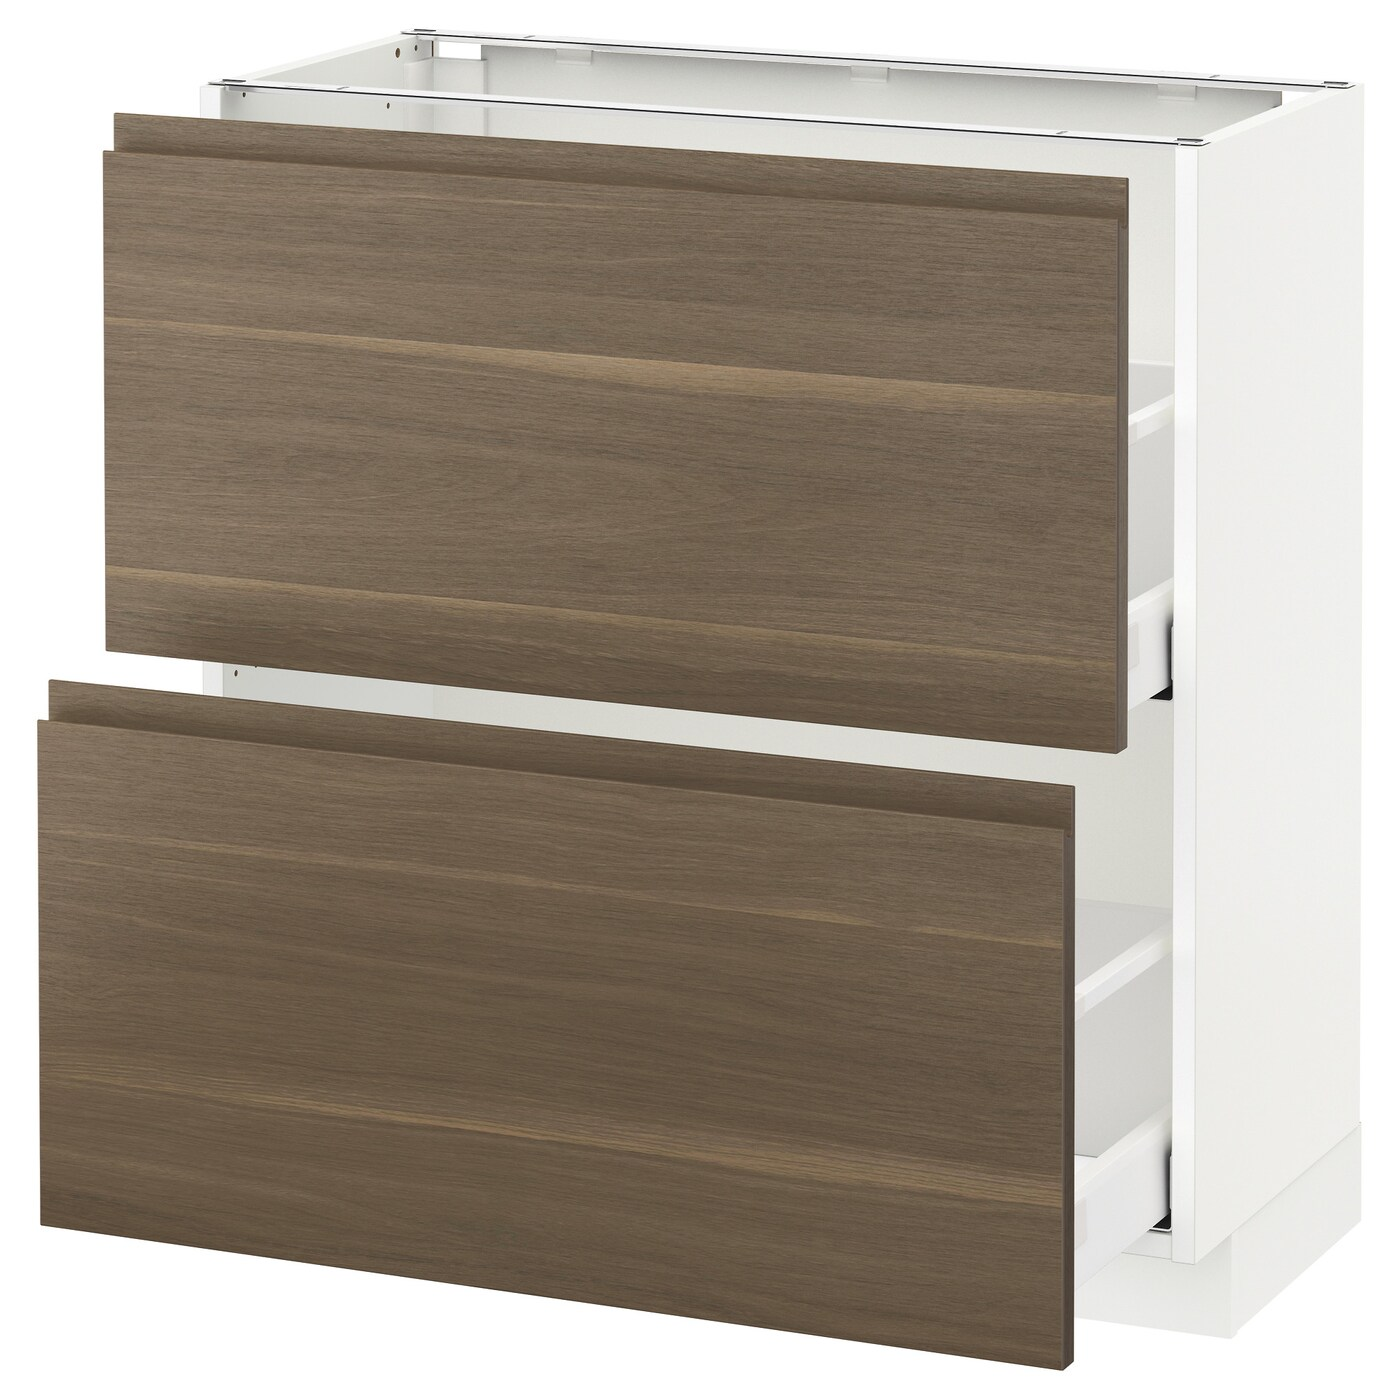 Unterschrank Küche Ikea Metod / Maximera Base Cabinet With 2 Drawers - White/voxtorp Walnut 80x37 Cm